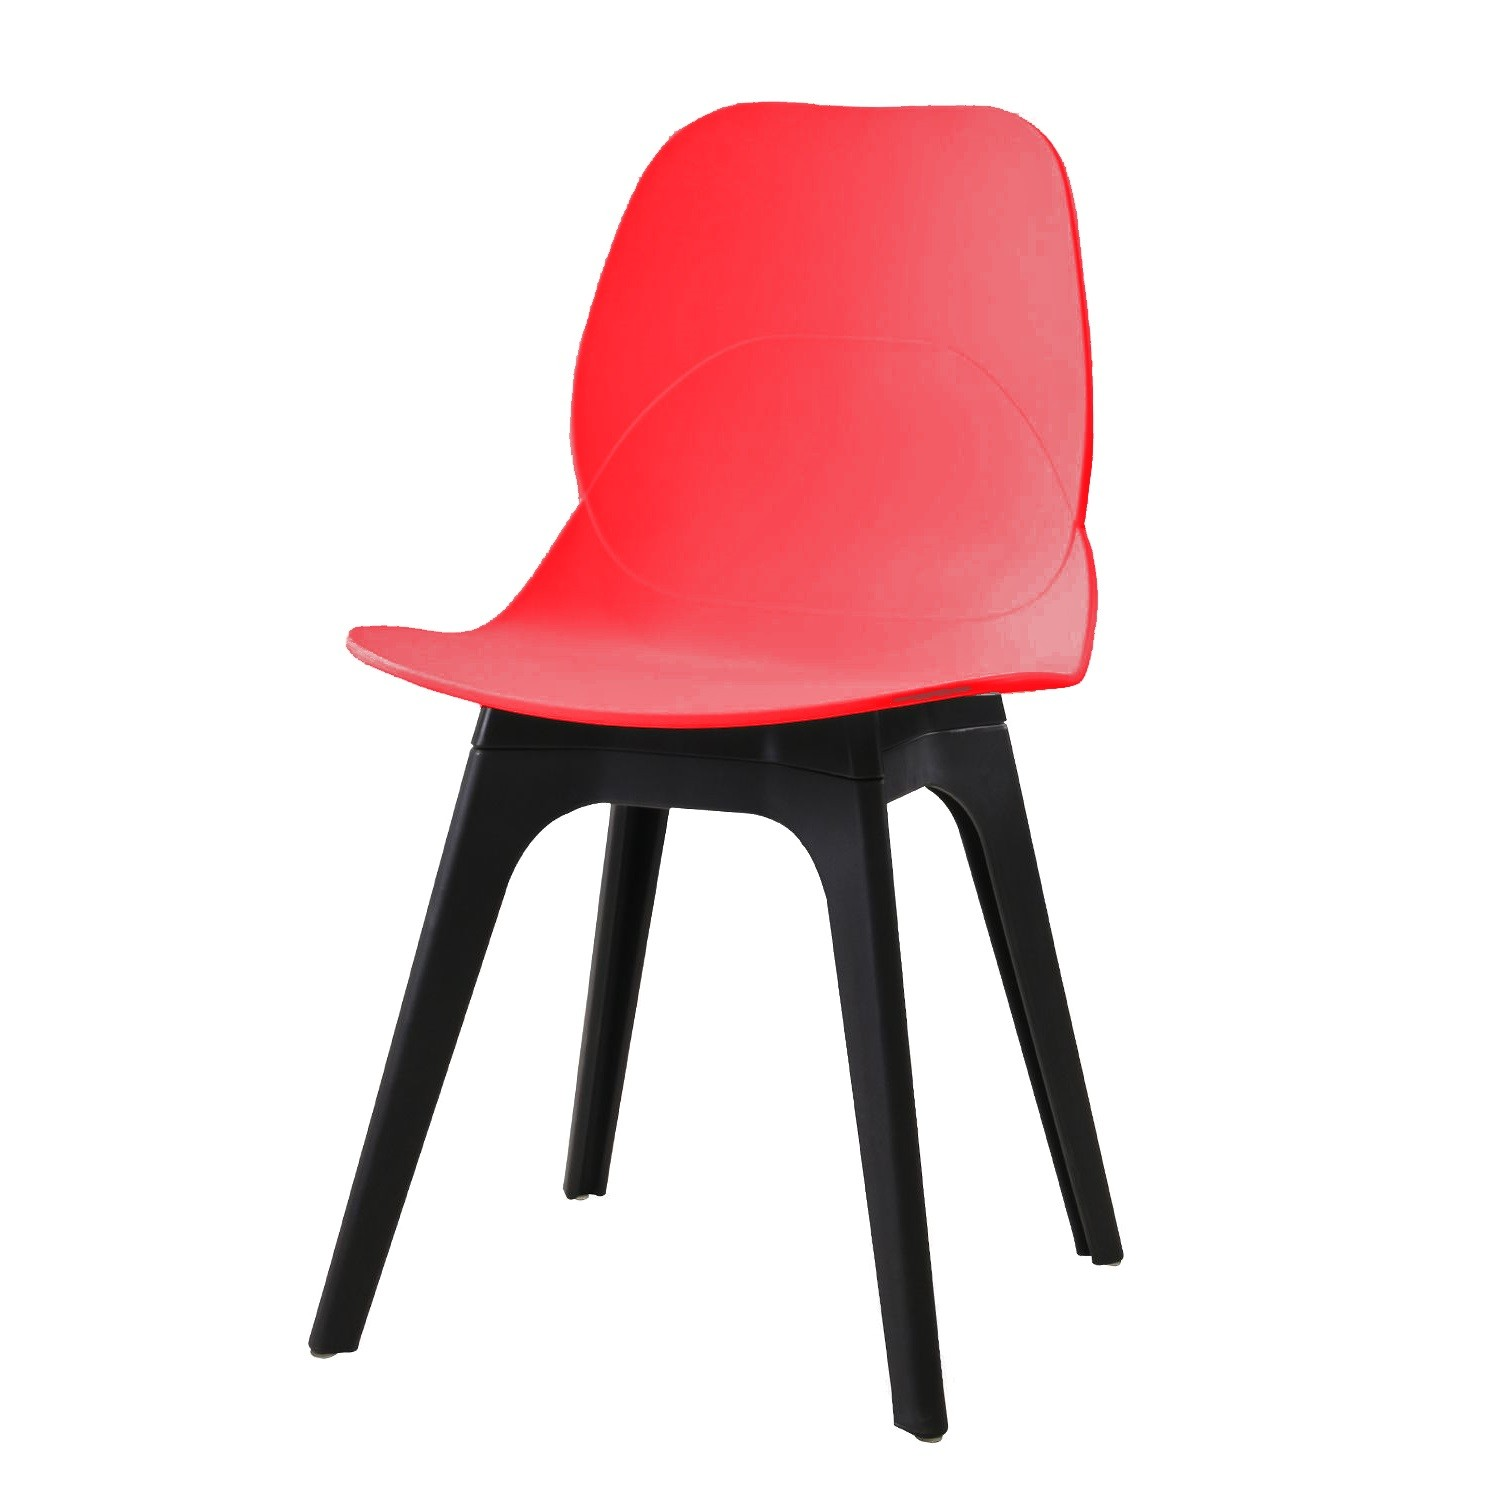 Chair ARIES, Black Polypropylene And Network